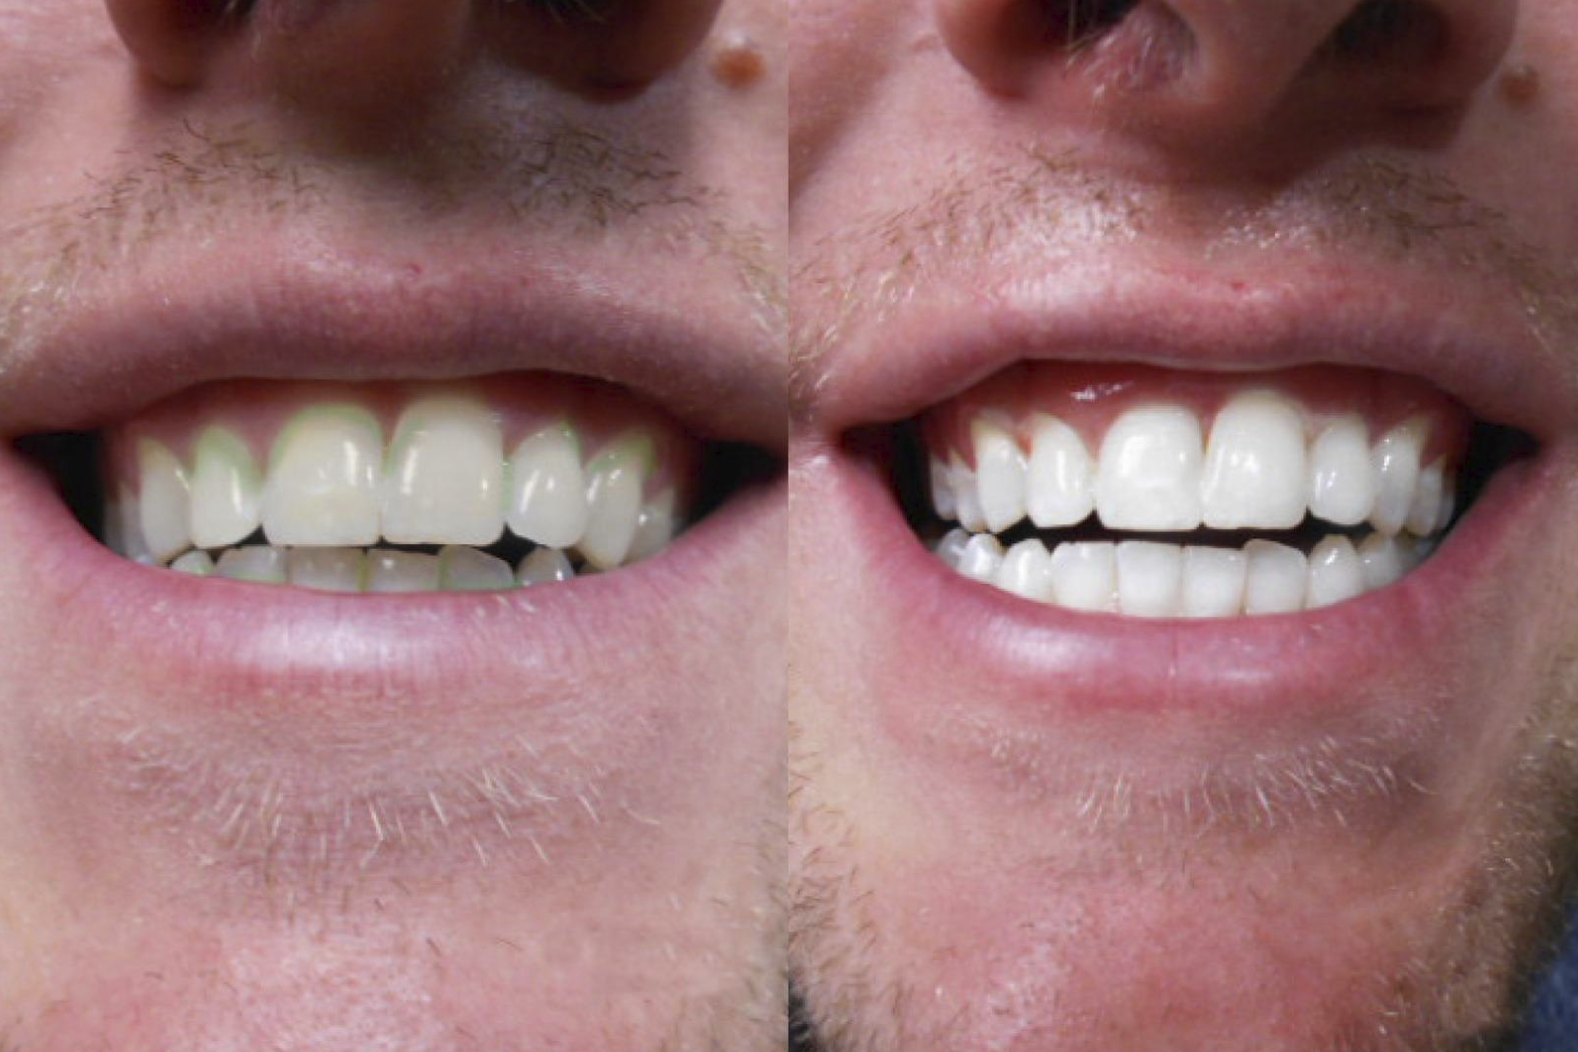 Left side shows reviewer's teeth that are yellowed and dull. The right side shows the reviewer's teeth after using the pen and they're much whiter.